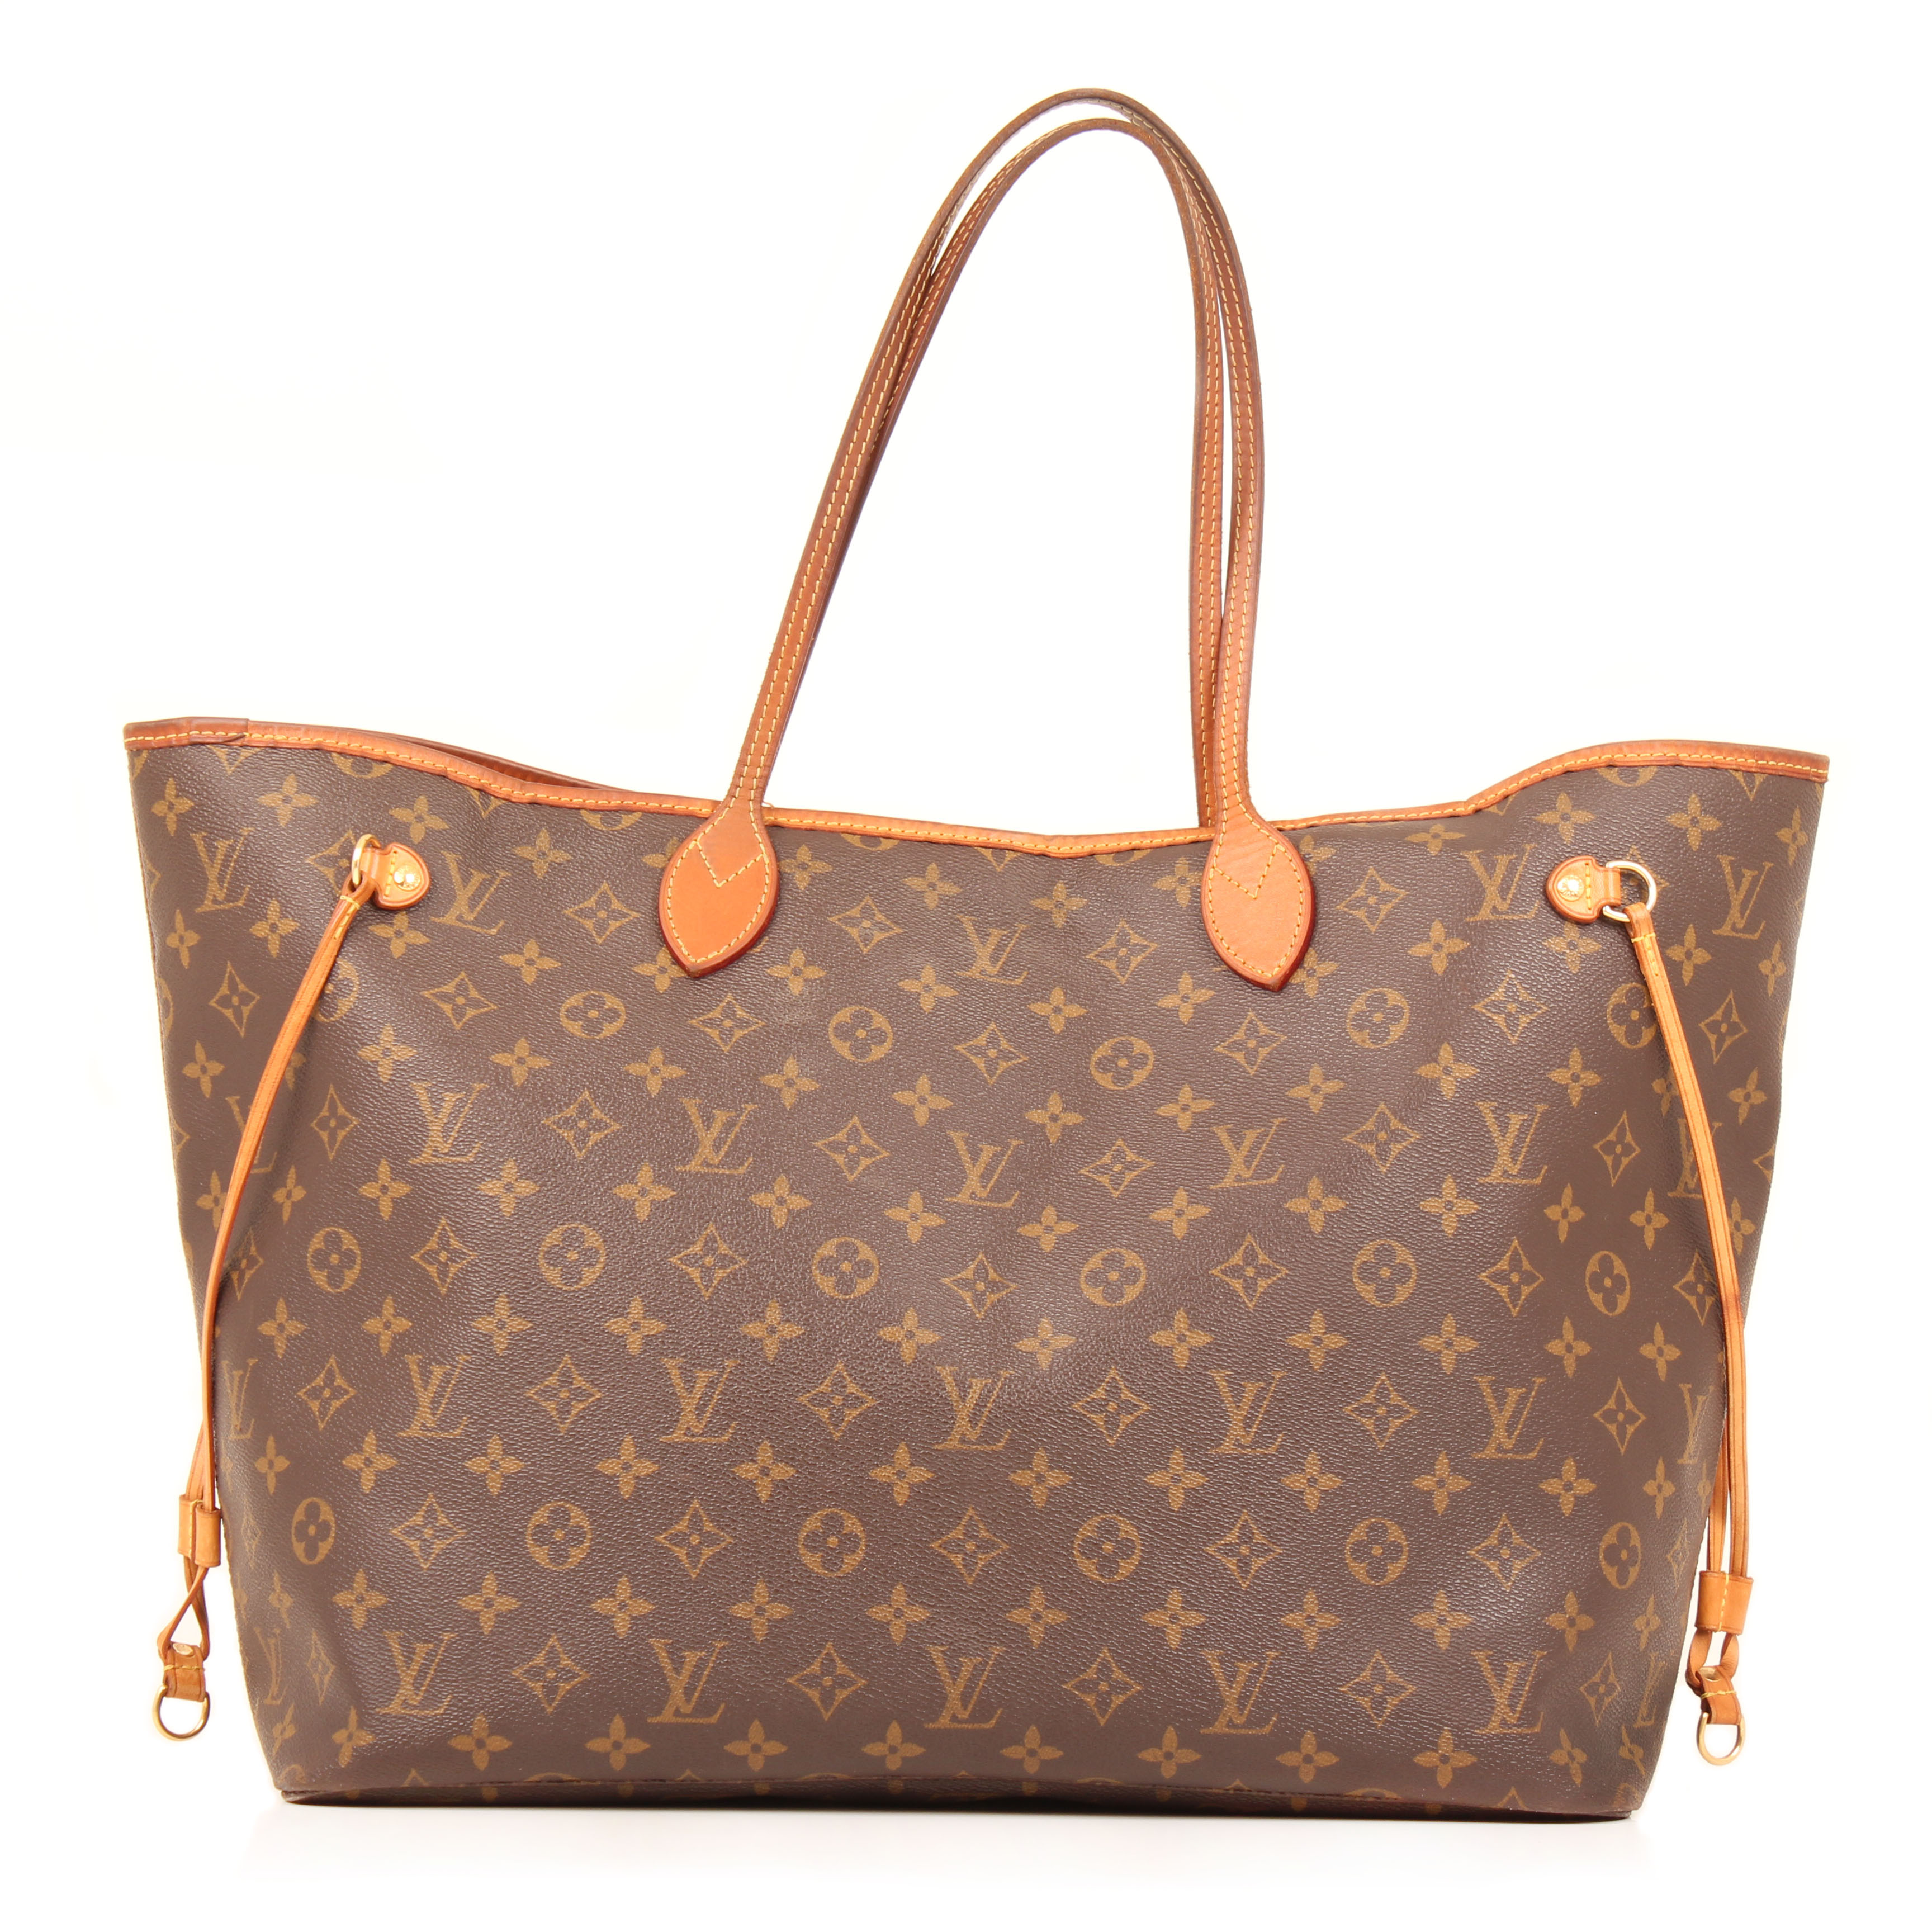 ee111e64c082 bolso louis vuitton neverfull gm monogram vintage general